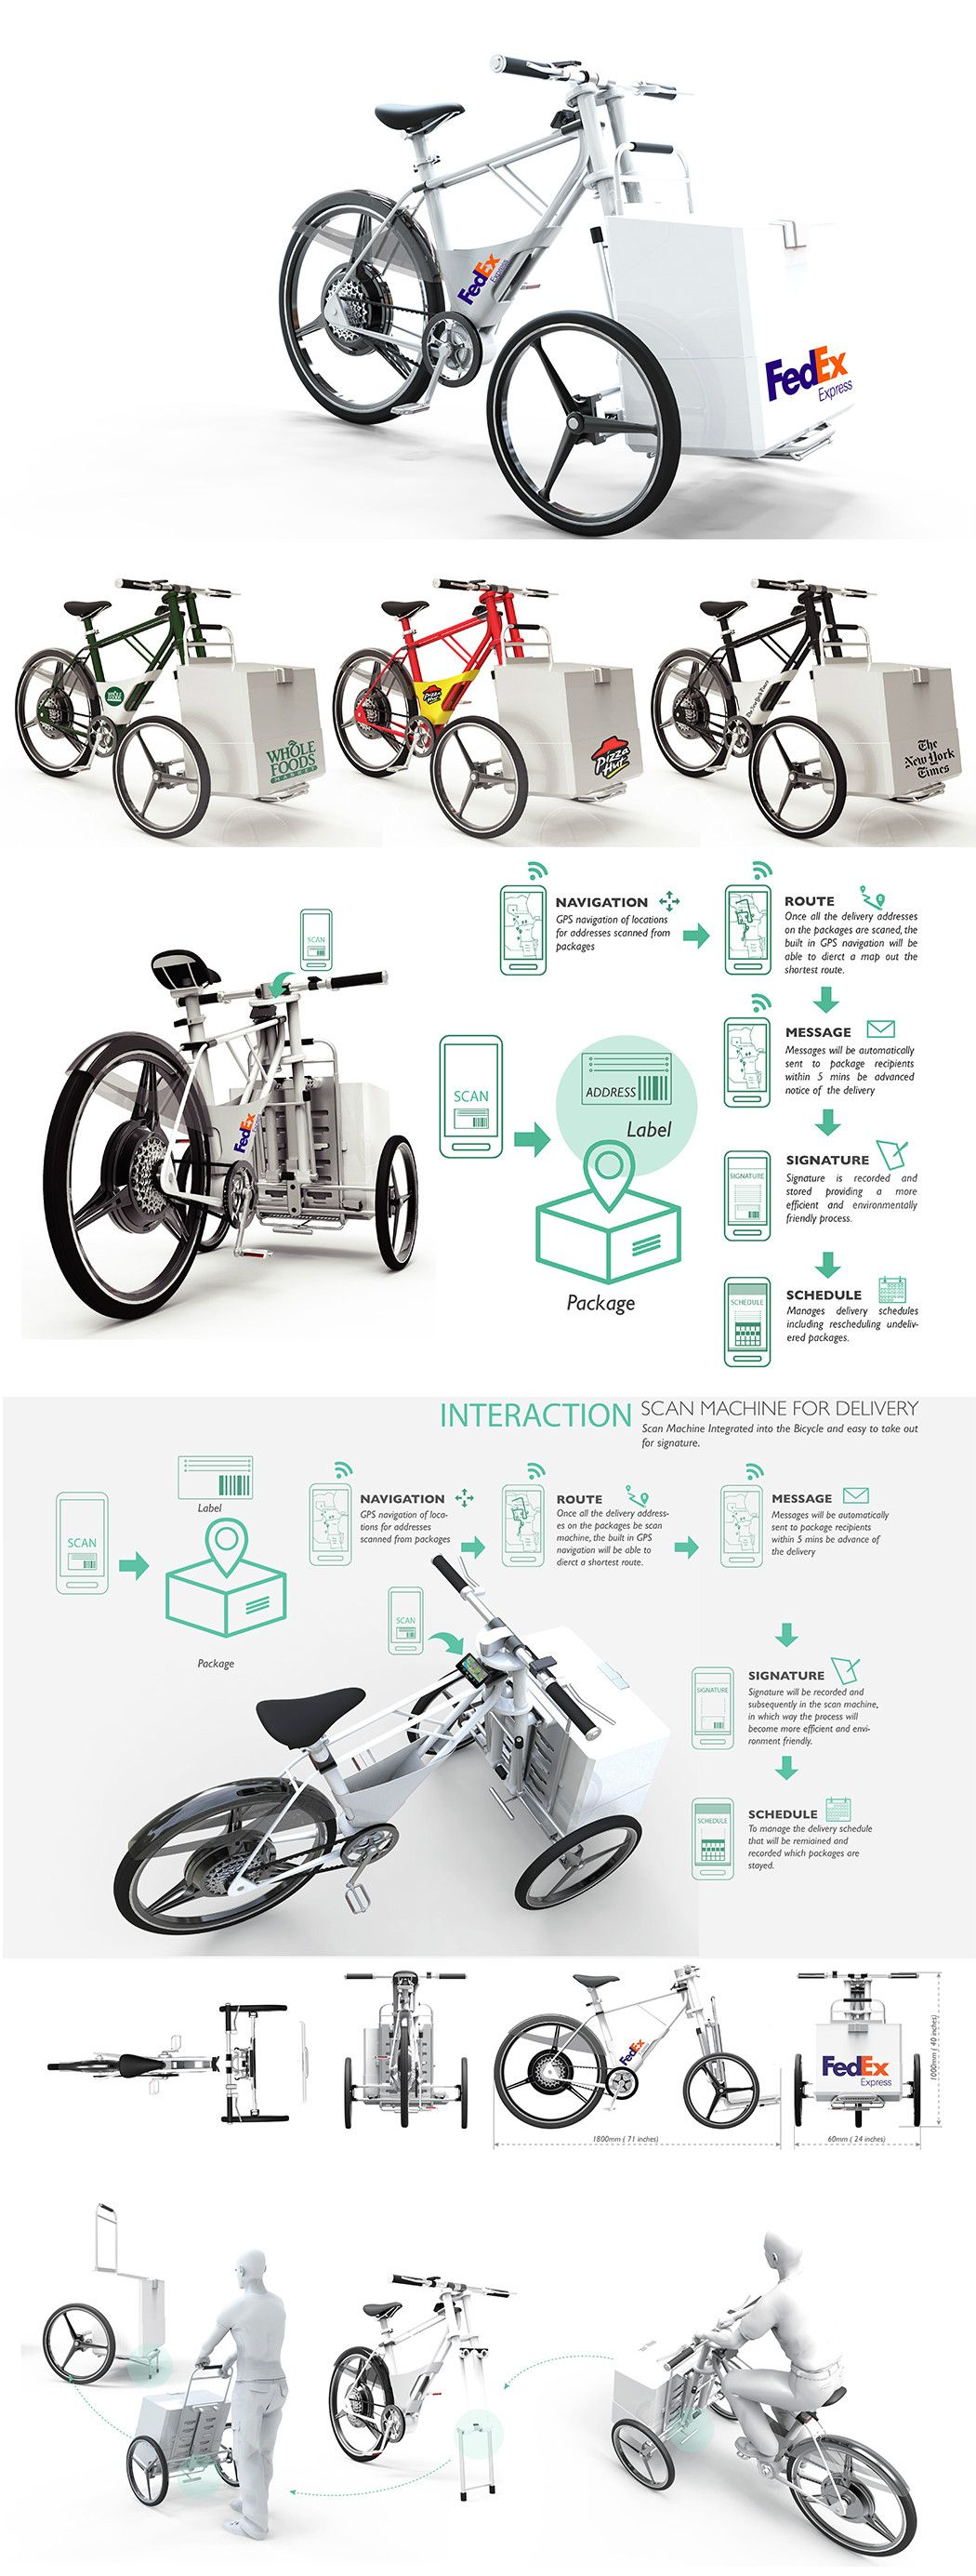 Designed for delivery services, the Cargob Urban Eco-Bicycle a more environmental and efficient space-saving delivery method. #Cargob #Urban #Cycle #Bicycle #Green #Energy #Transport #YankoDesign